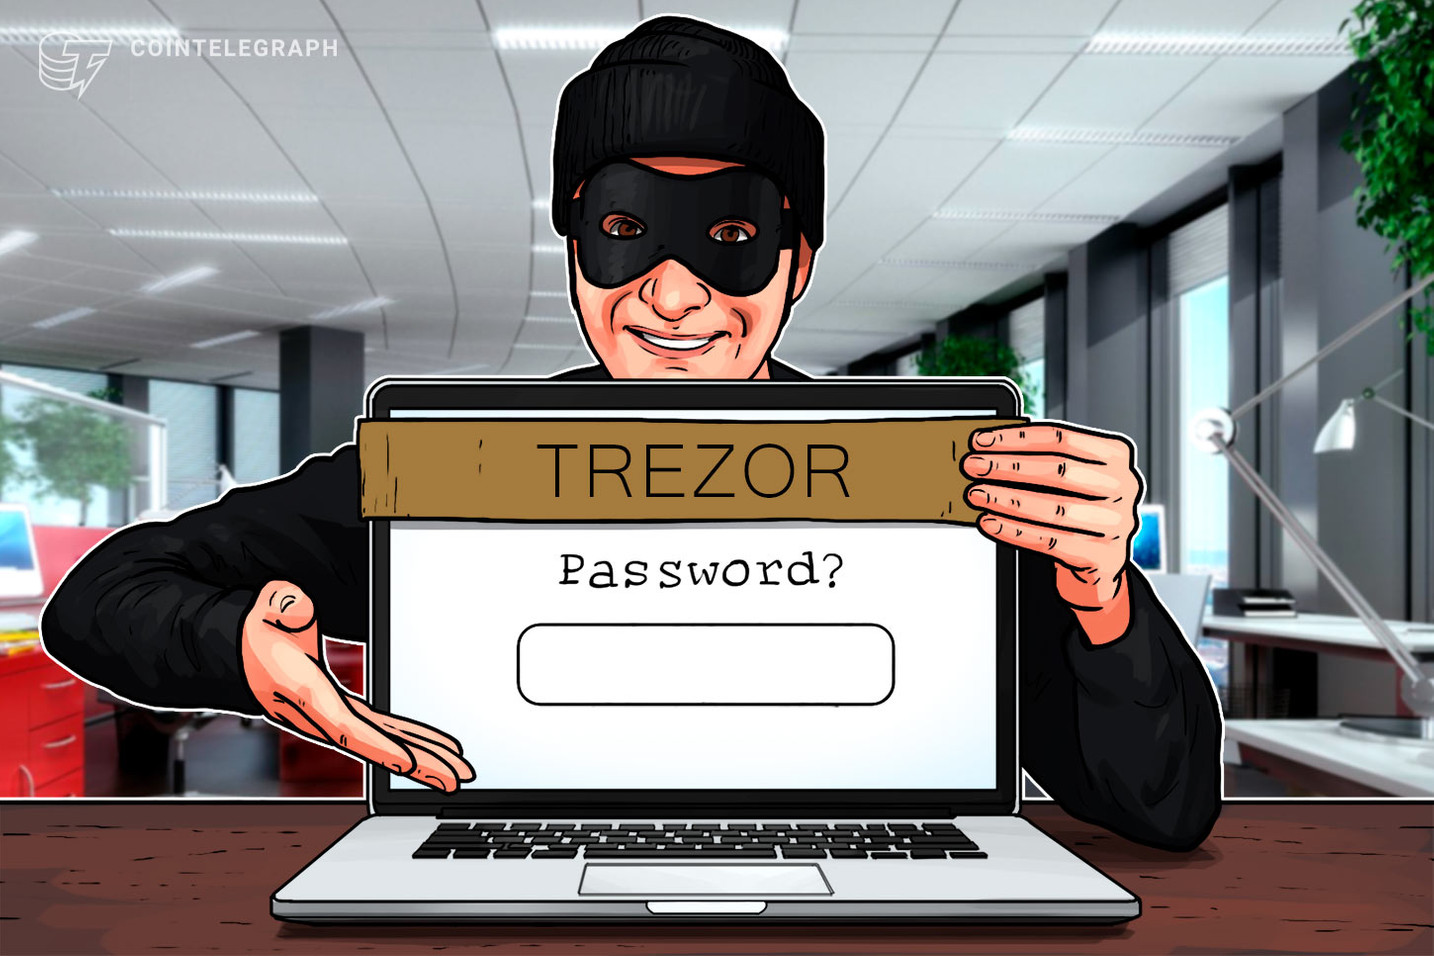 Fake Crypto Wallet App Imitating Trezor Found on Google Play Store